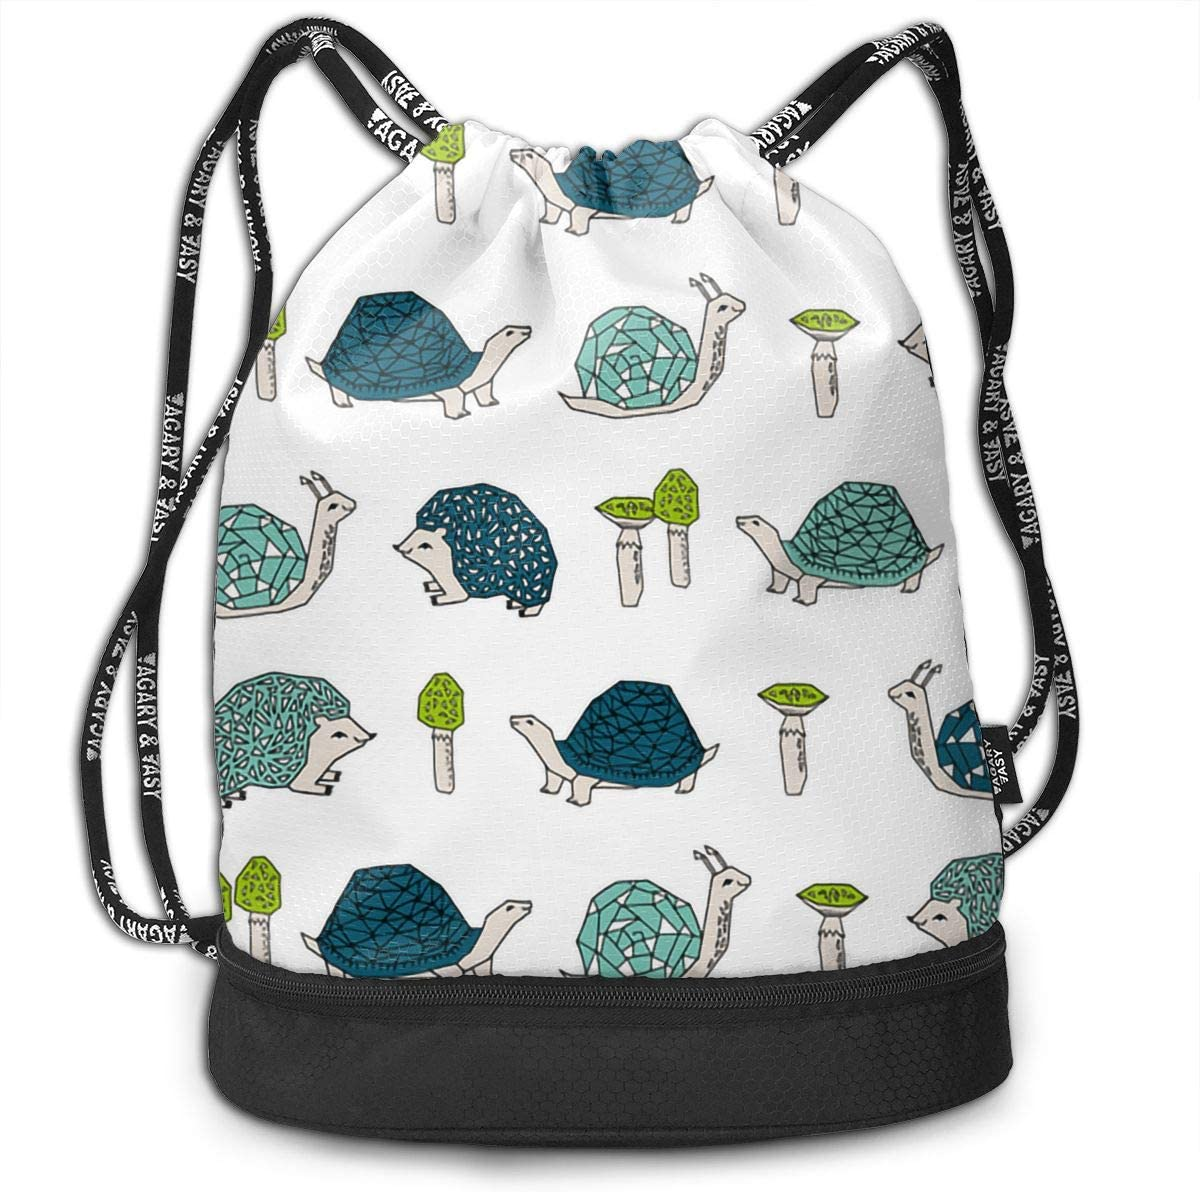 Drawstring Backpack Mushrooms Hedgehogs Snail Gym Bag